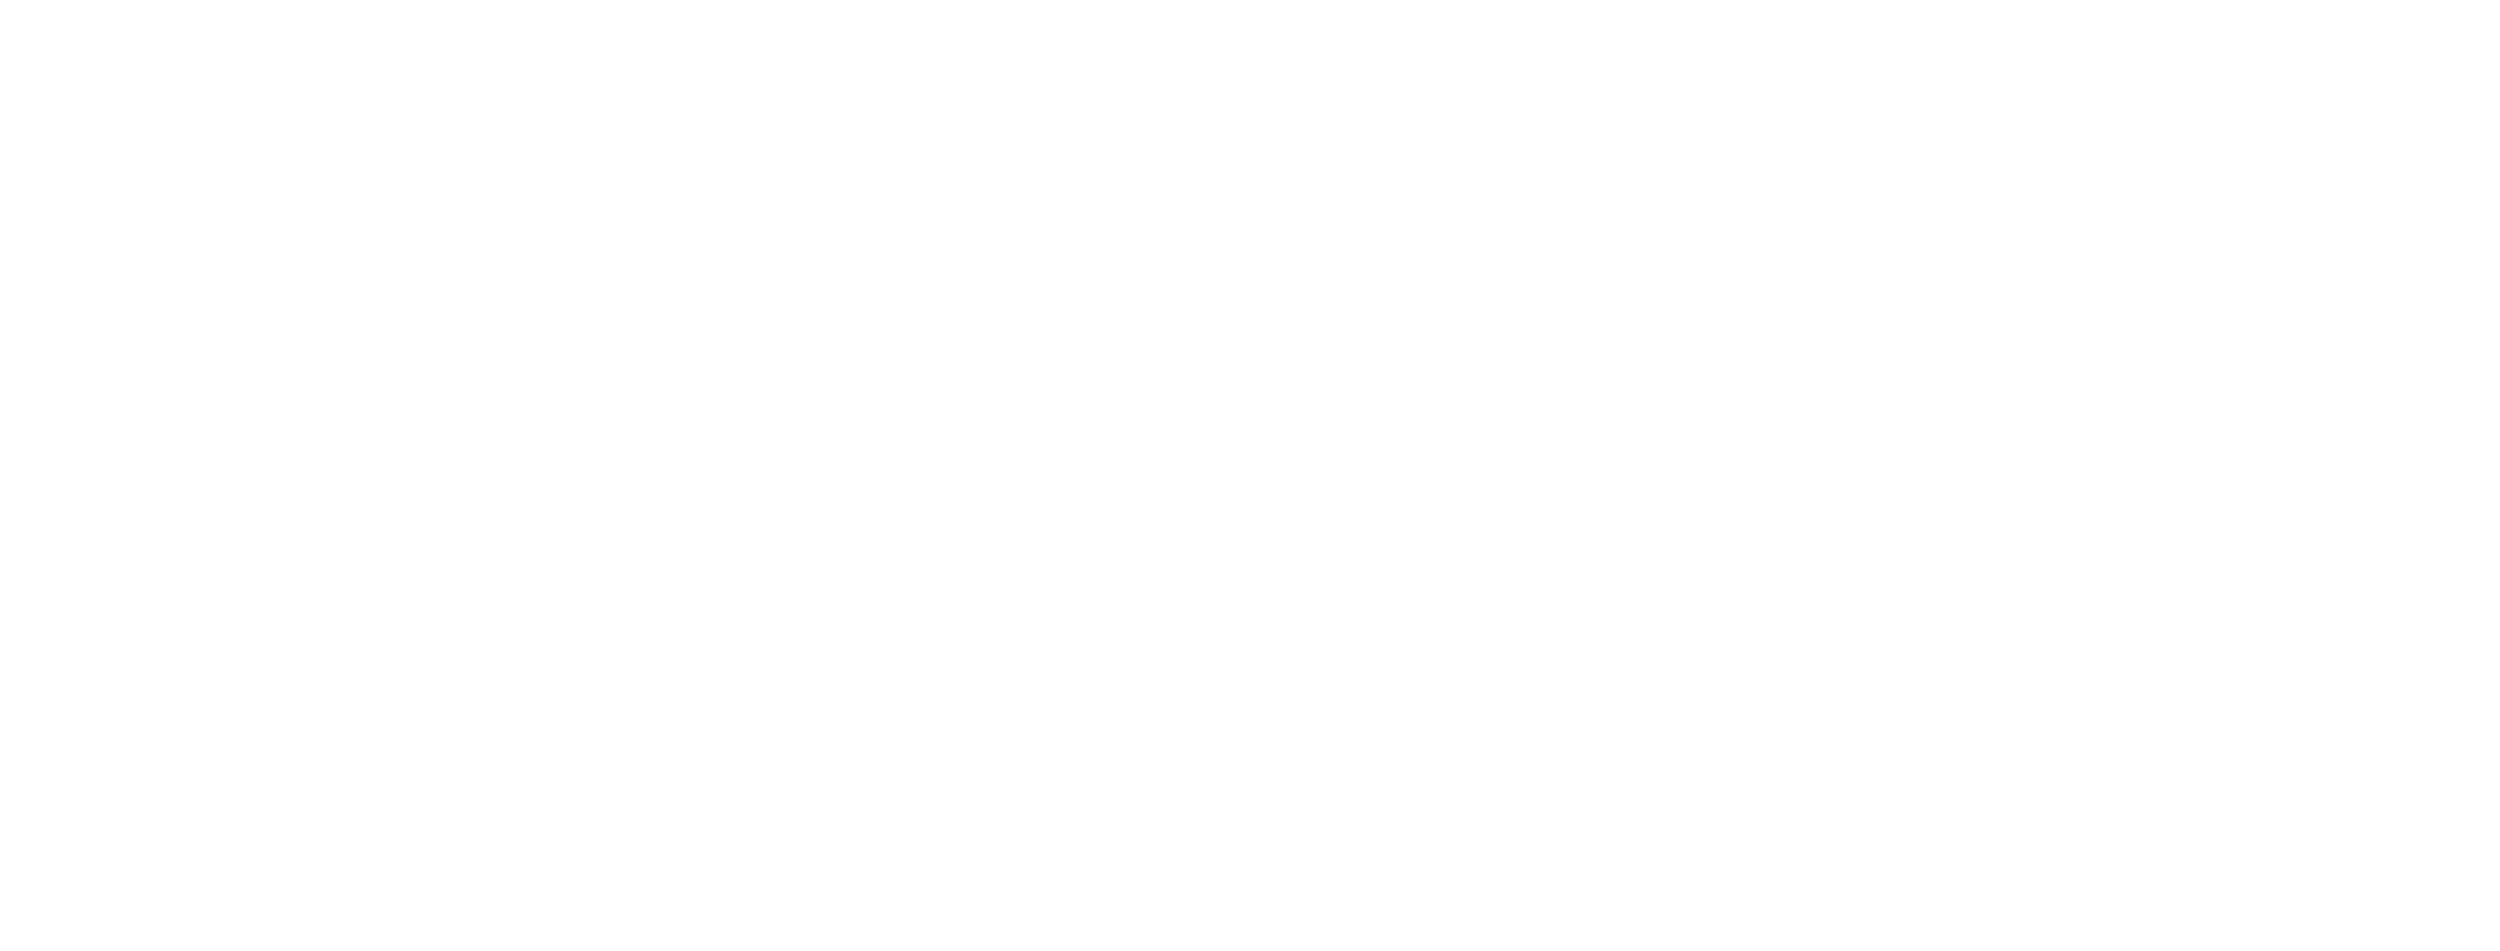 We see success in the remarkable.